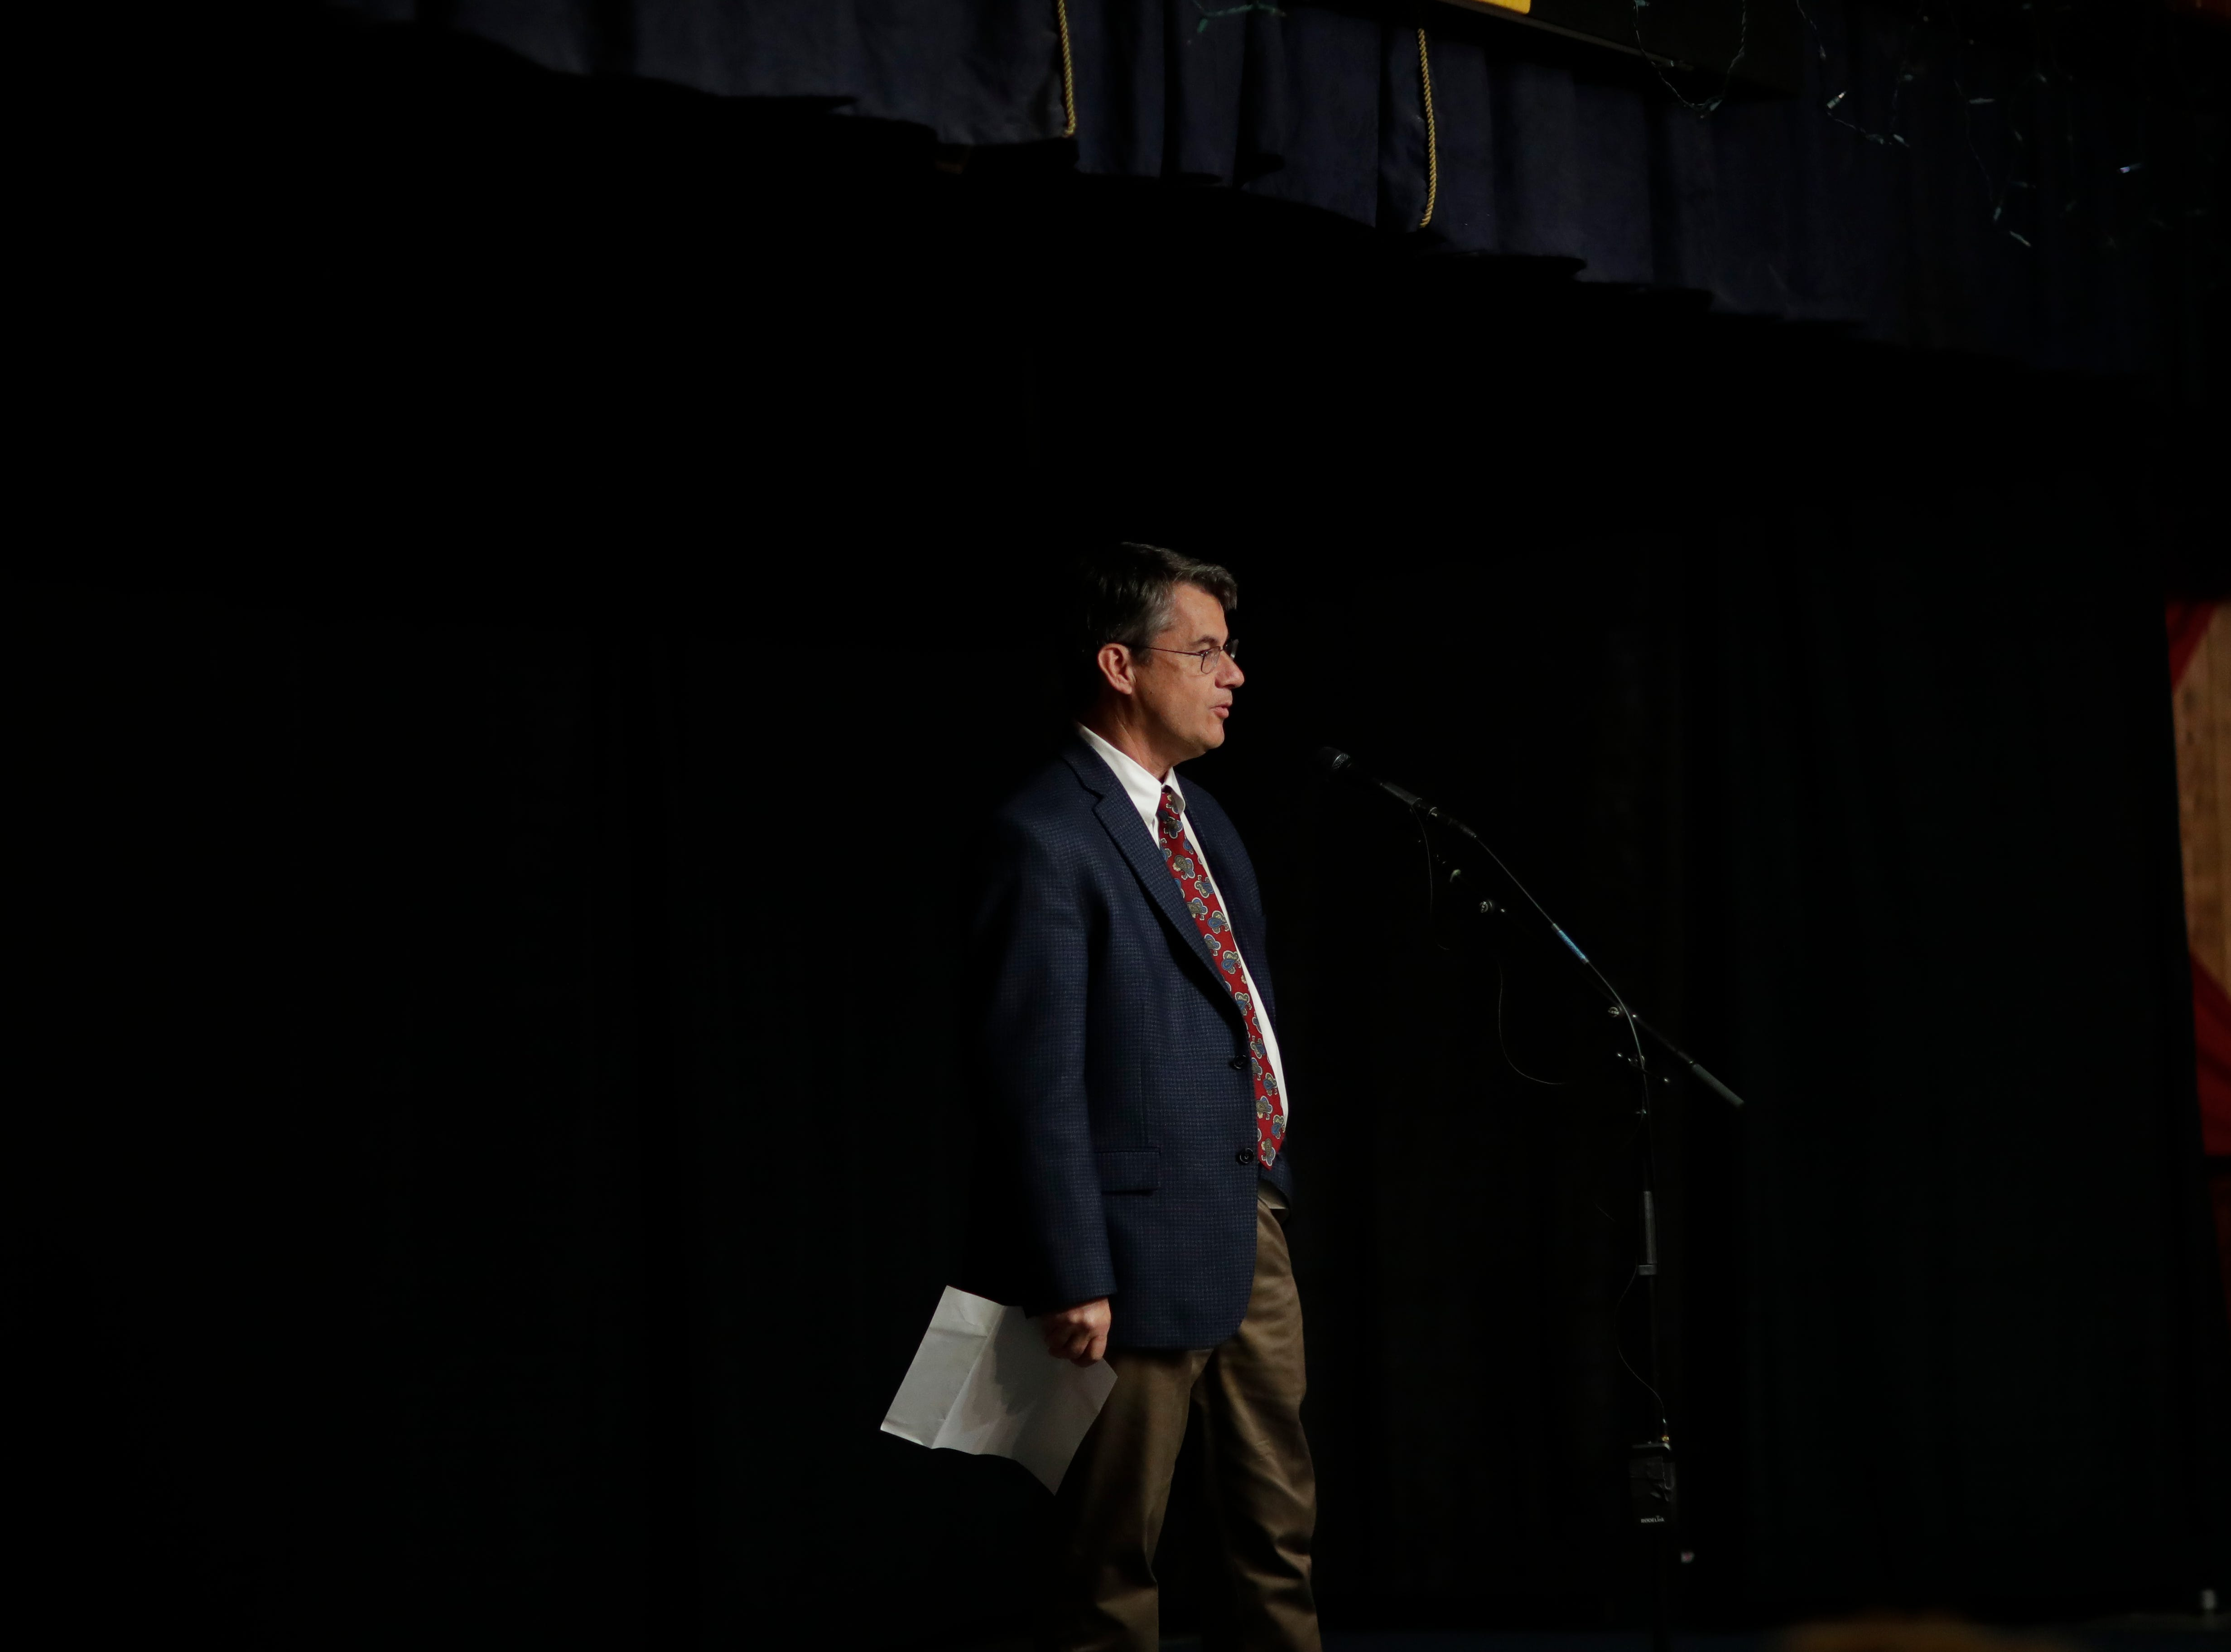 "Tallahassee Democrat President Skip Foster makes introductions to start the program during the Storytellers event ""In the Blink of an Eye: Stories of Tragedy, Triumph and Transformation"" at the American Legion Post 13 in Tallahassee Friday, Nov. 30, 2018."